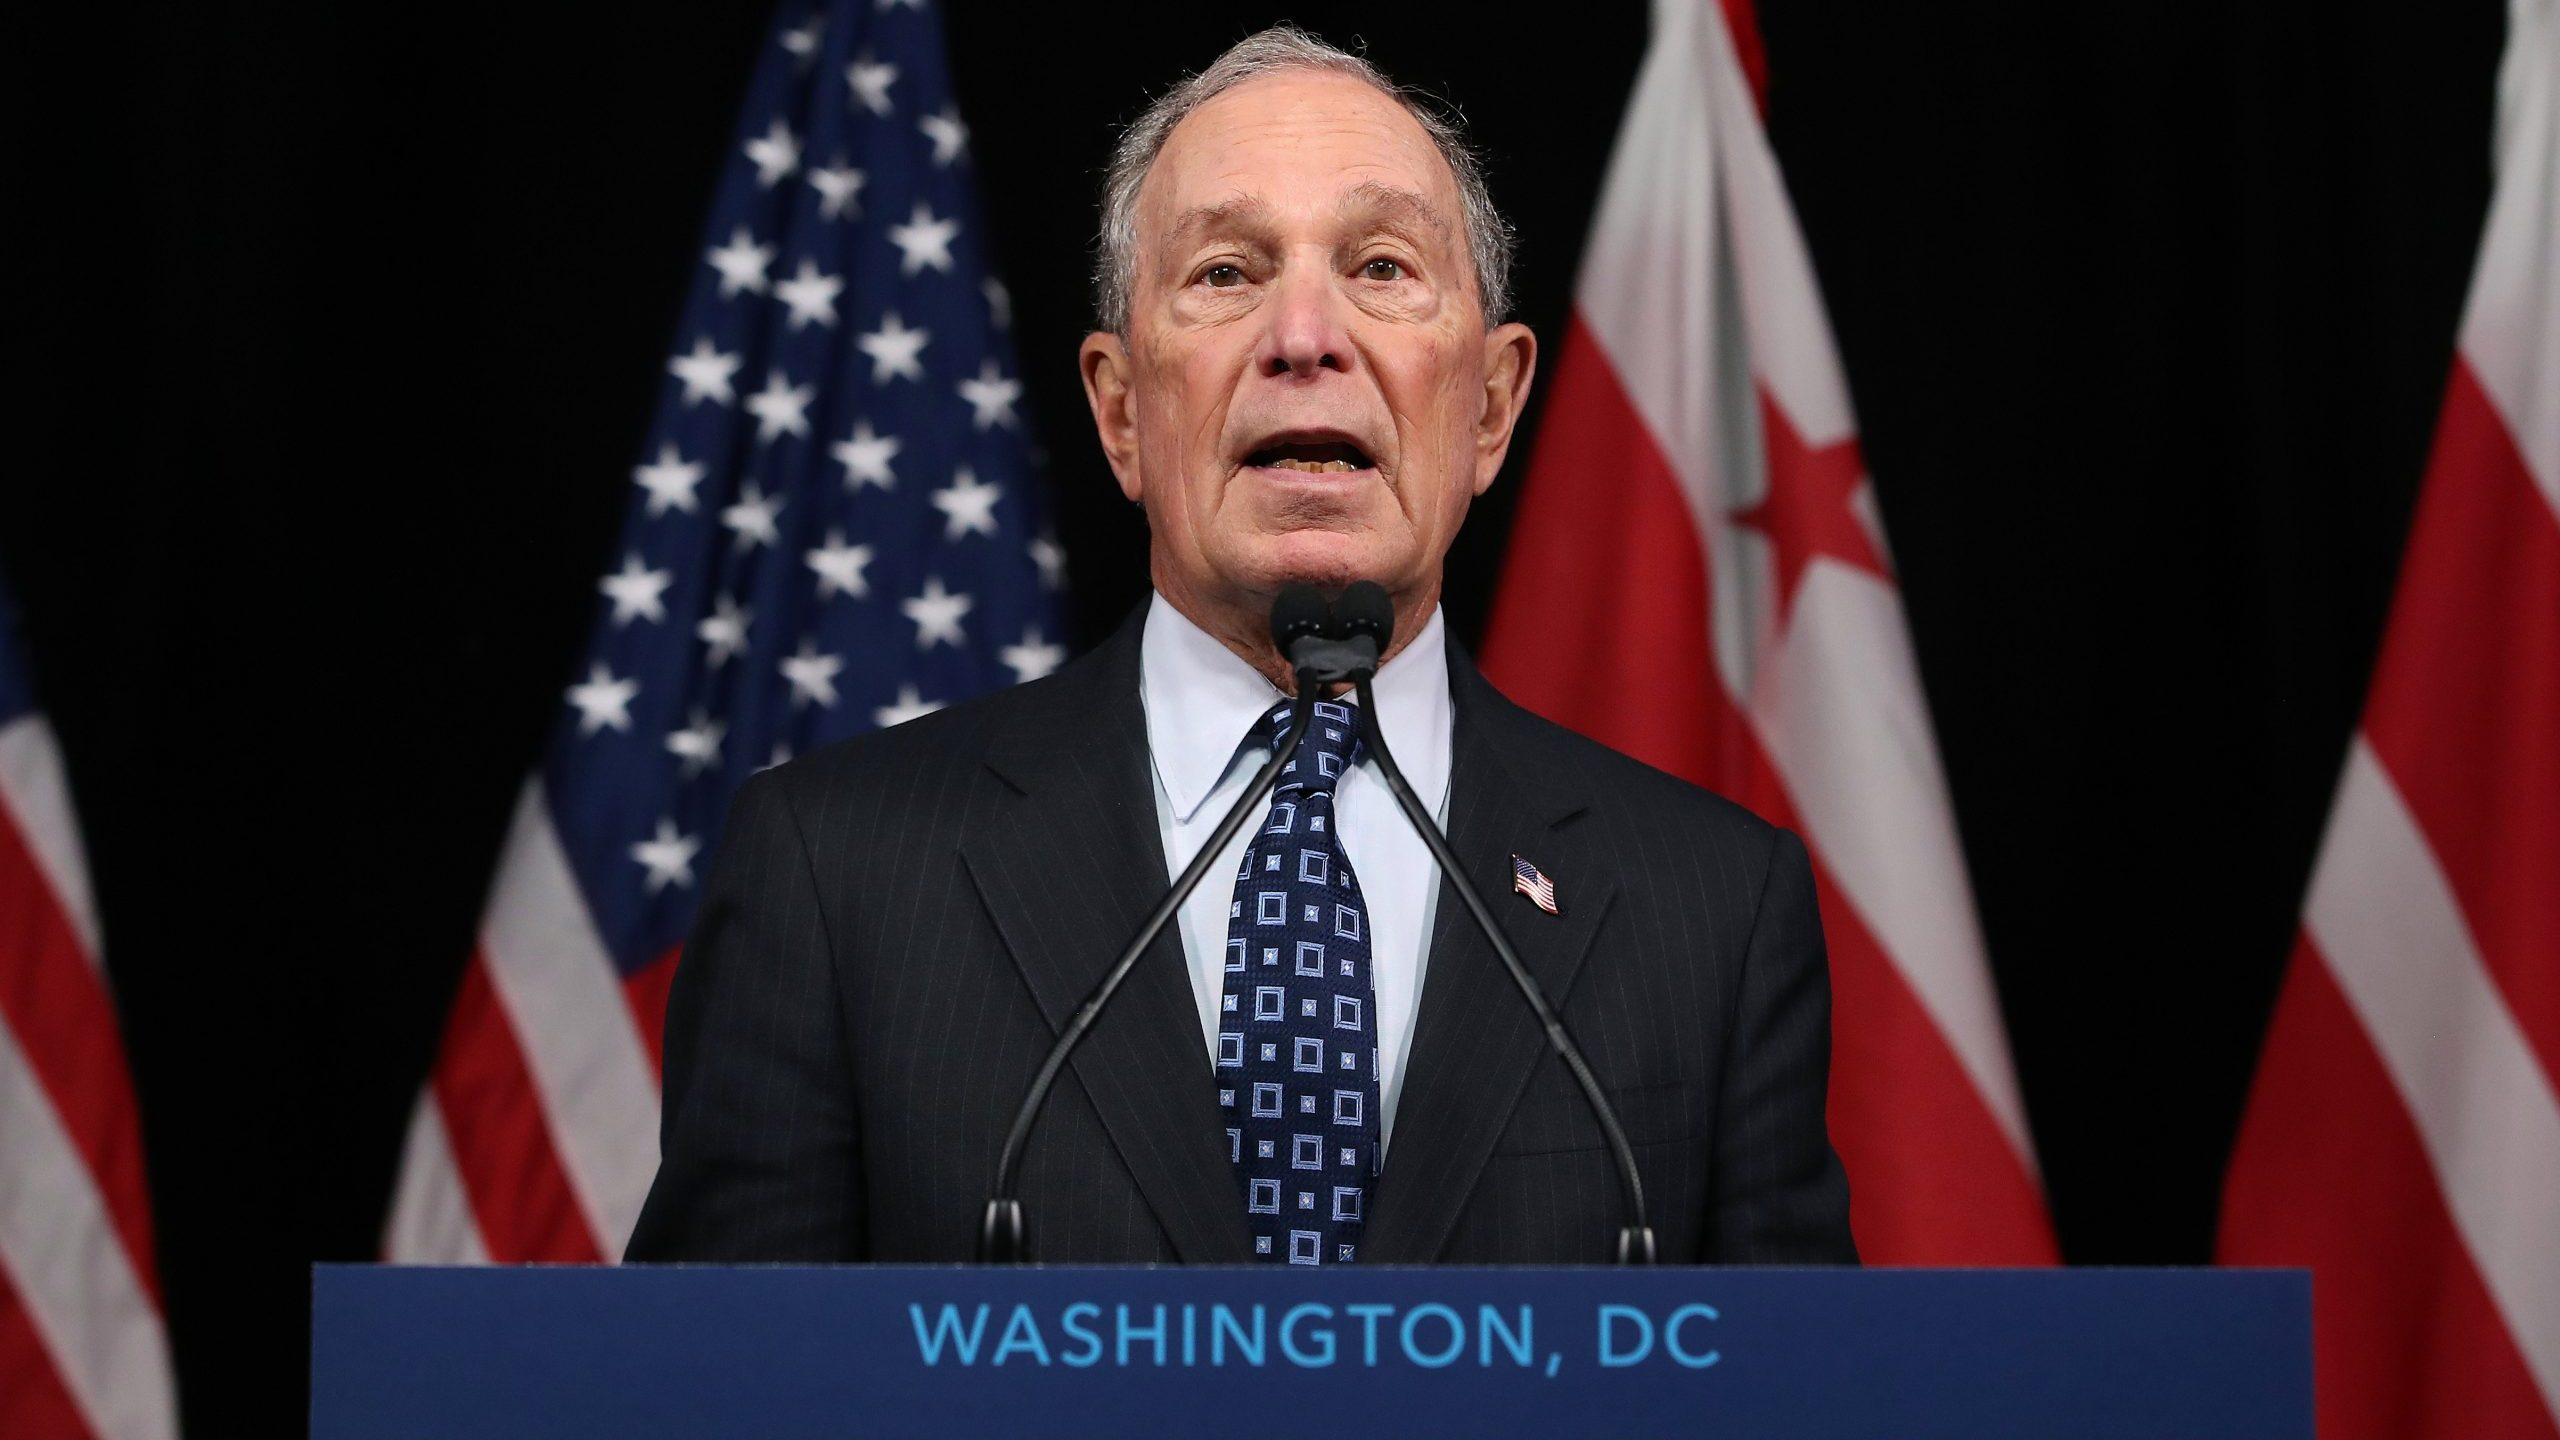 Democratic presidential candidate Michael Bloomberg speaks about affordable housing during a campaign event where he received an endorsement from District of Columbia Mayor, Muriel Bowser, on Jan. 30, 2020, in Washington, DC. (Credit: Mark Wilson/Getty Images)